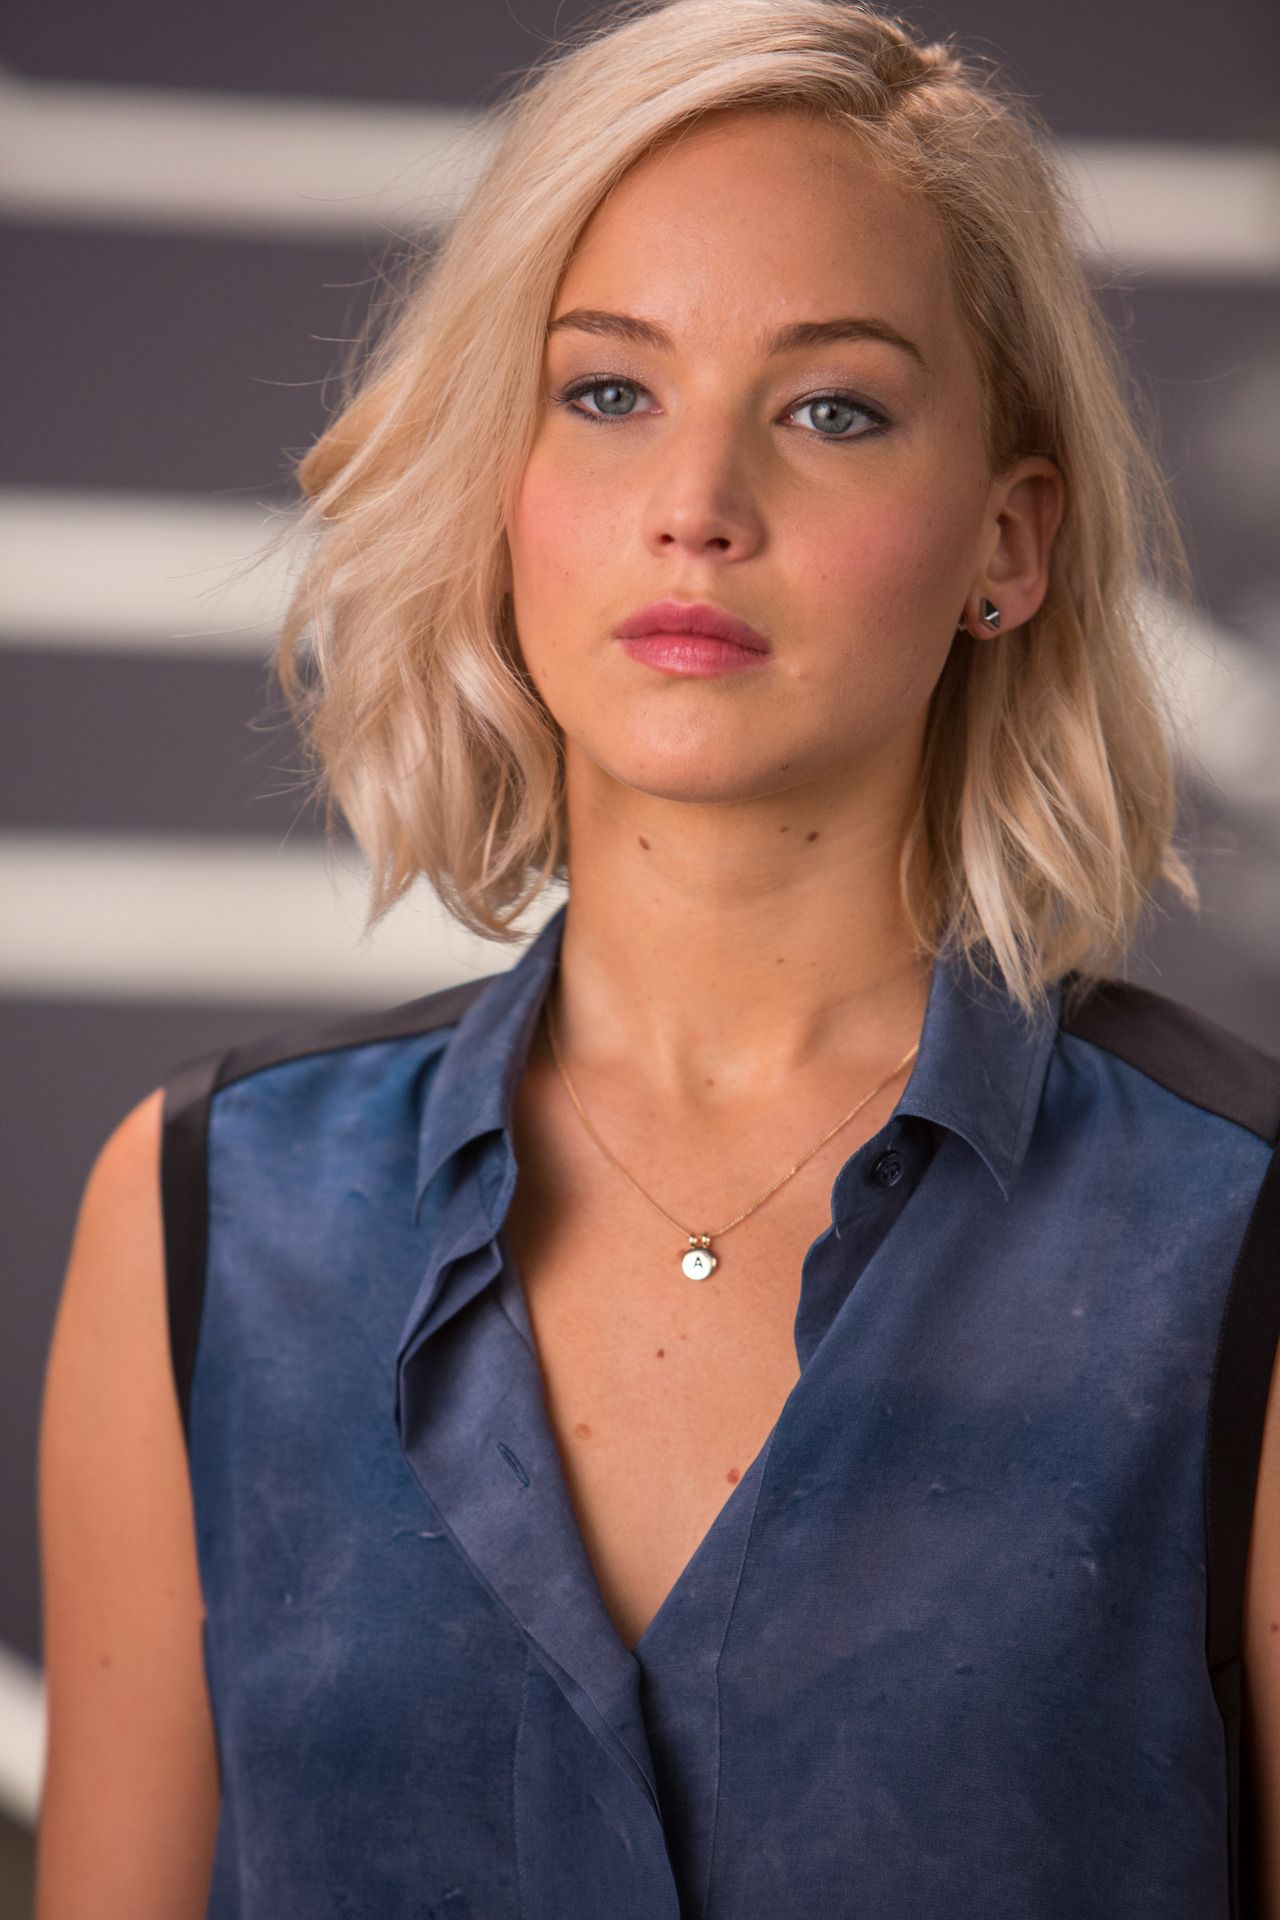 New Uhq Pictures Of Jennifer Lawrence From Passengers Wardrobe Test Https Jennifer Lawrence Haircut Jennifer Lawrence Blonde Jennifer Lawrence Short Hair